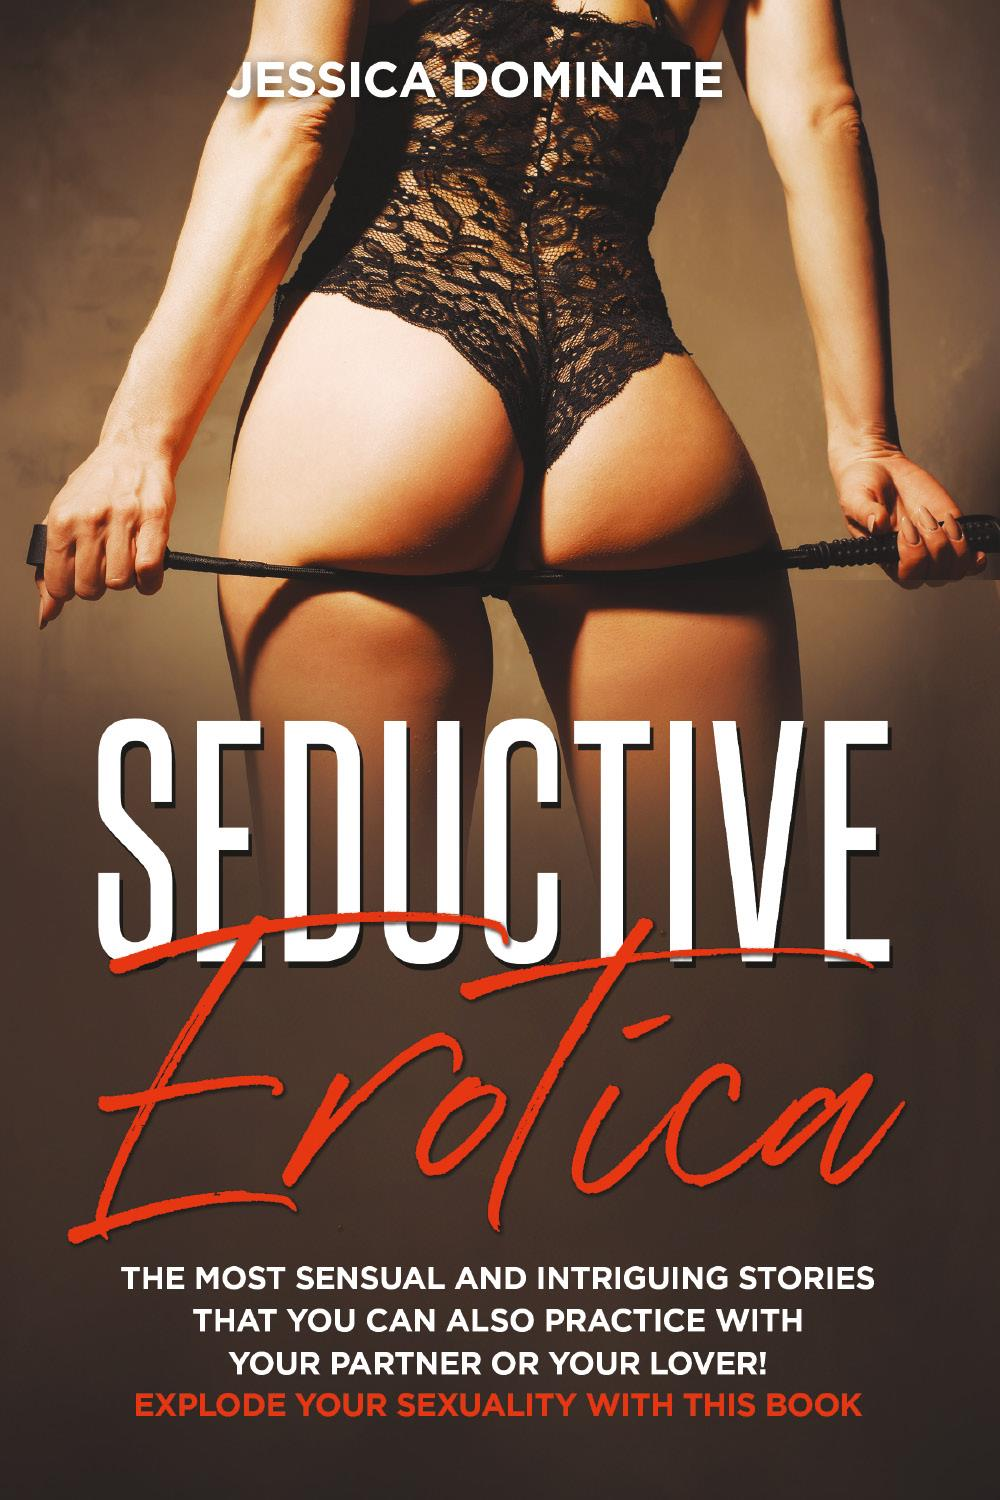 Seductive Erotica. The most sensual and intriguing stories that you can also practice with your partner or your lover! Explode your sexuality with this book